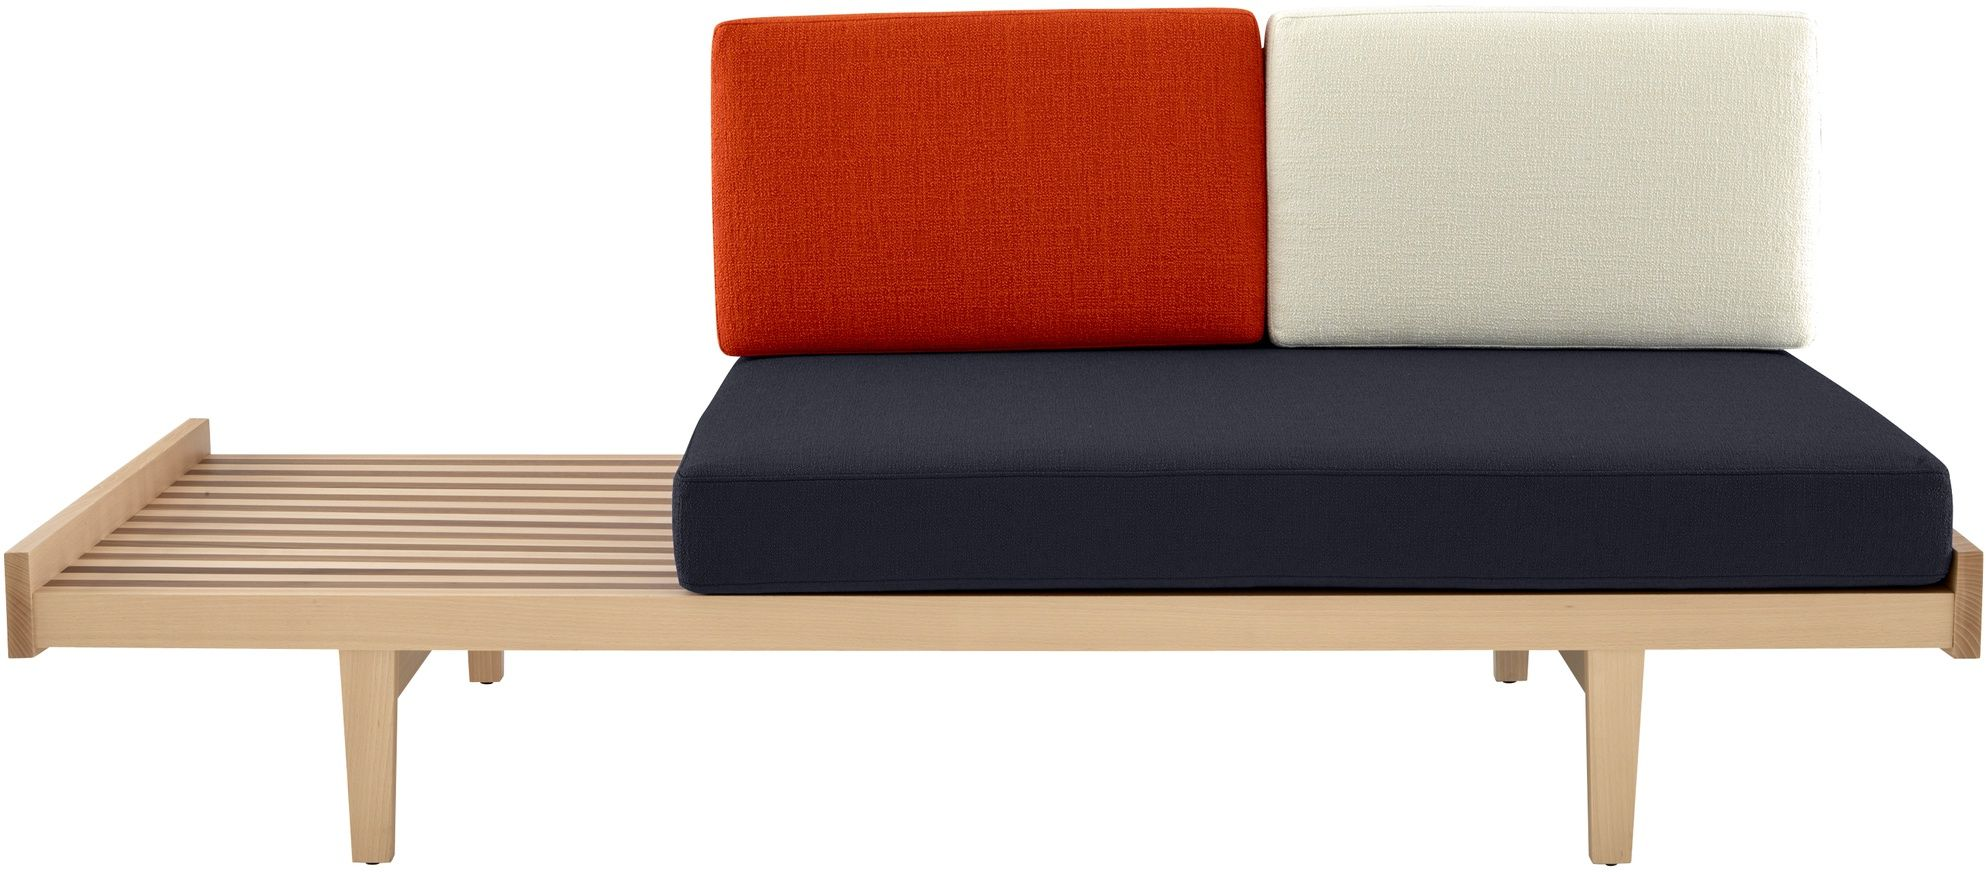 Daybed By Pierre Paulin For Ligne Roset Day Beds Daybed Studio